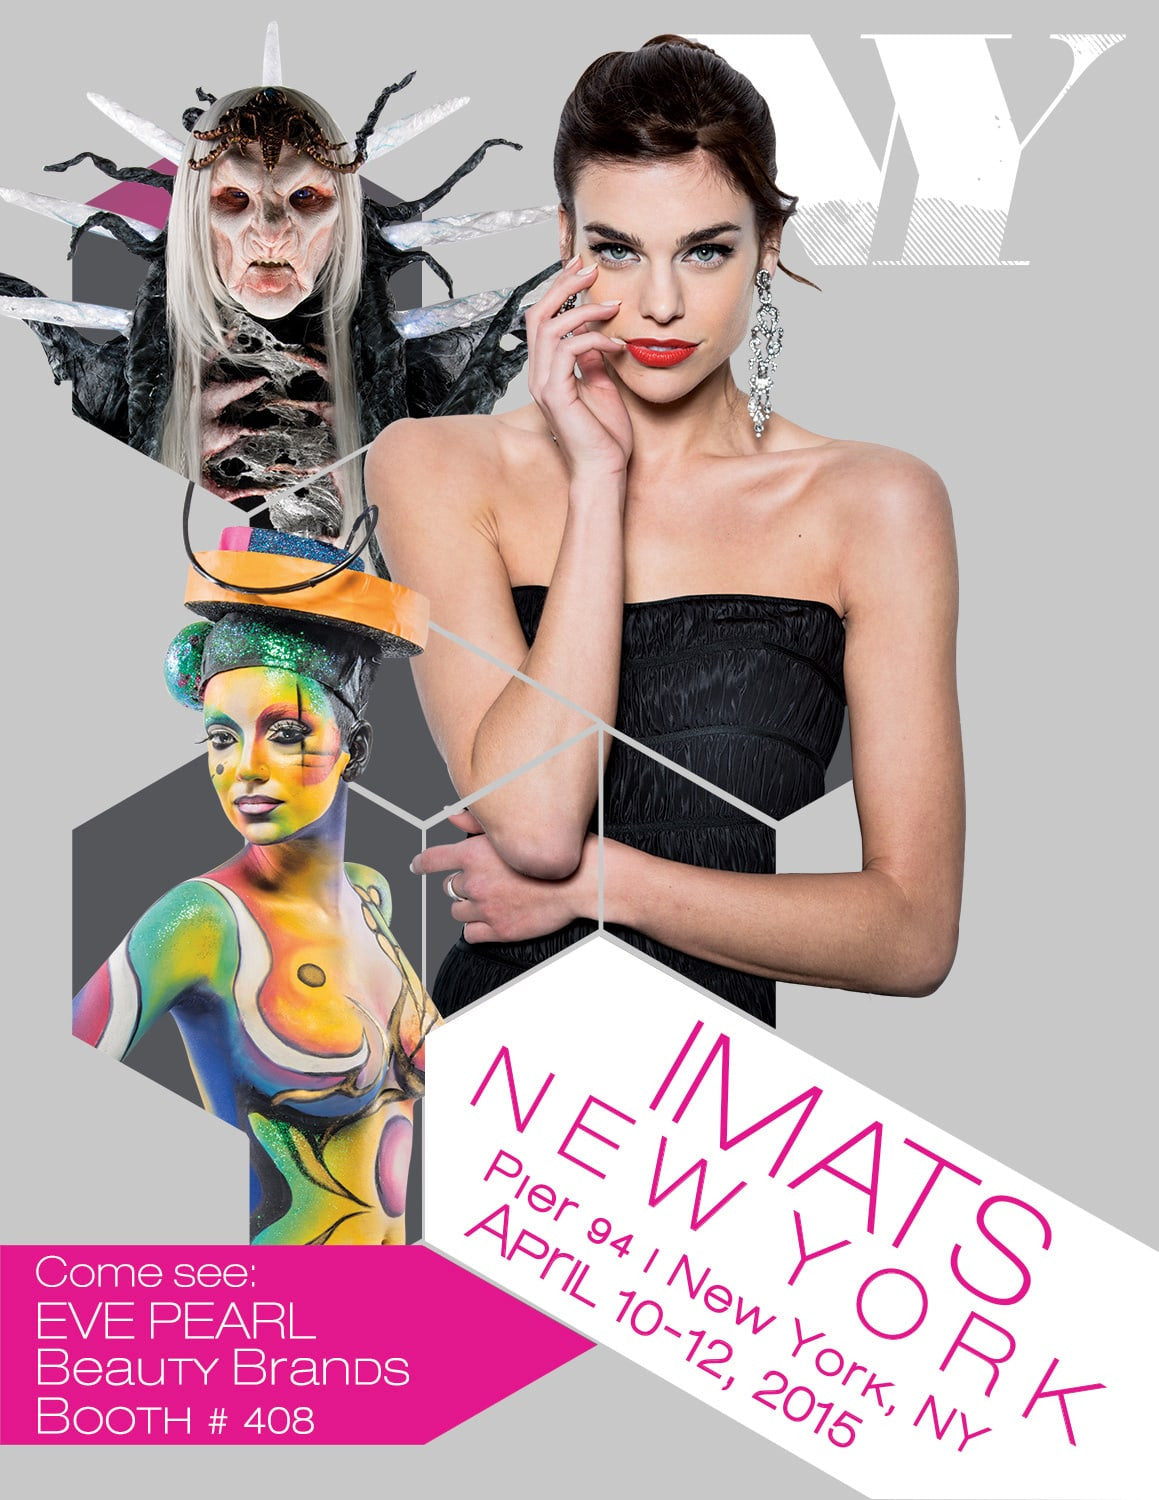 Join EVE PEARL Beauty Brands at IMATS New York